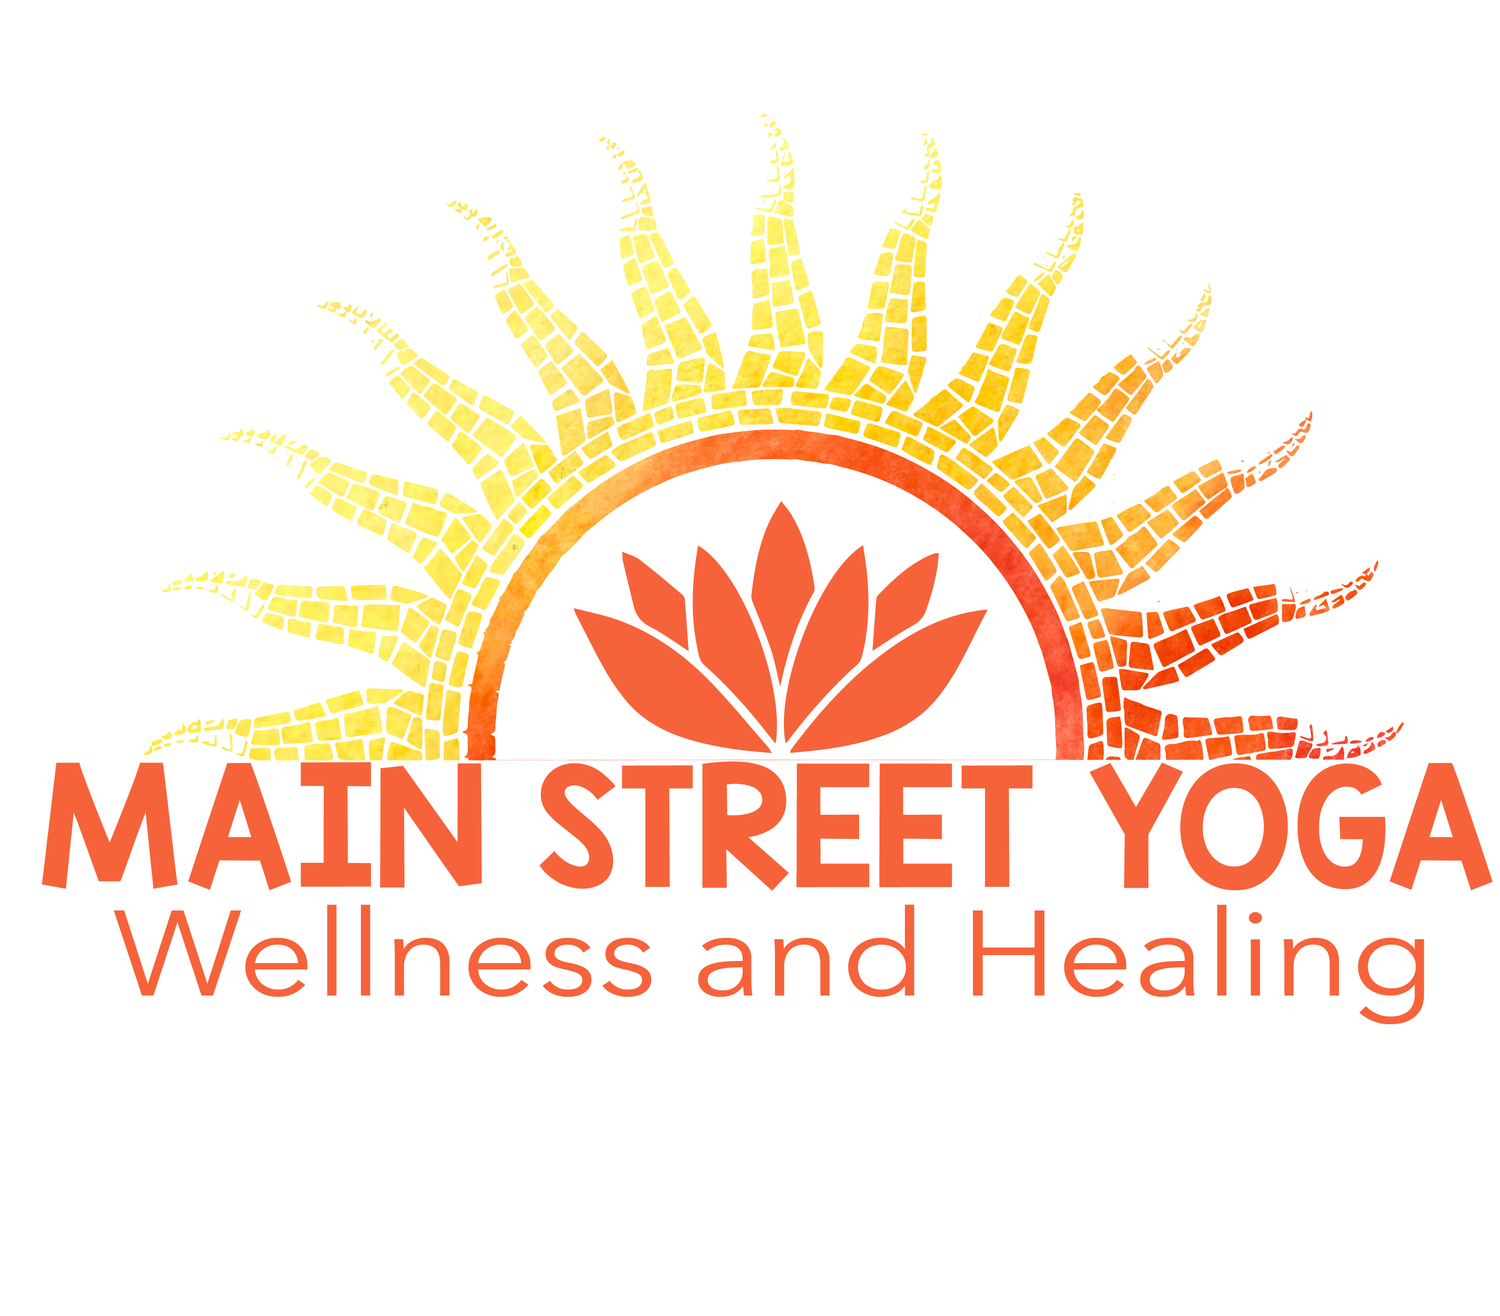 Main Street Yoga Healing and Wellness